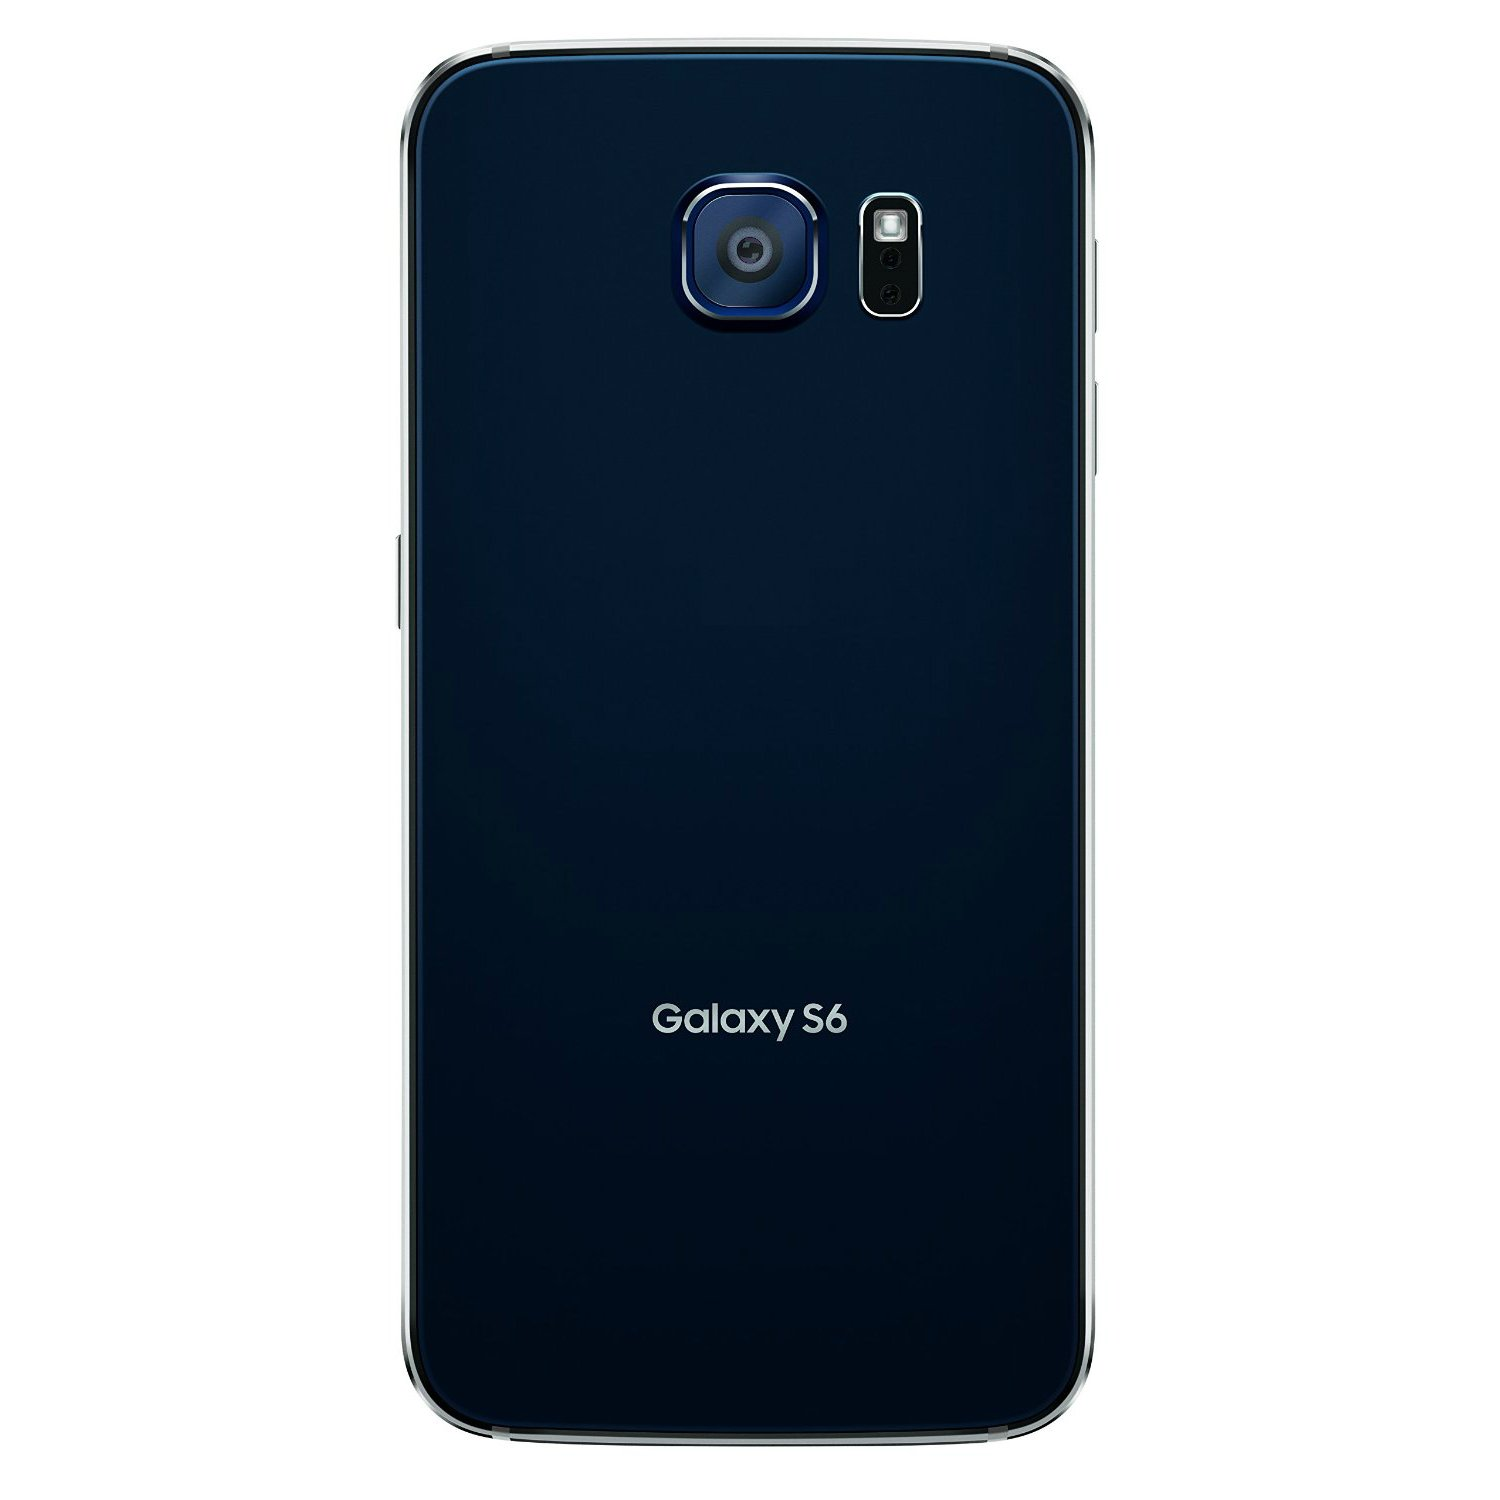 Samsung Galaxy S6 SM-G920A 32GB Sapphire Black Smartphone for AT&T (Certified Refurbished) by Samsung (Image #2)